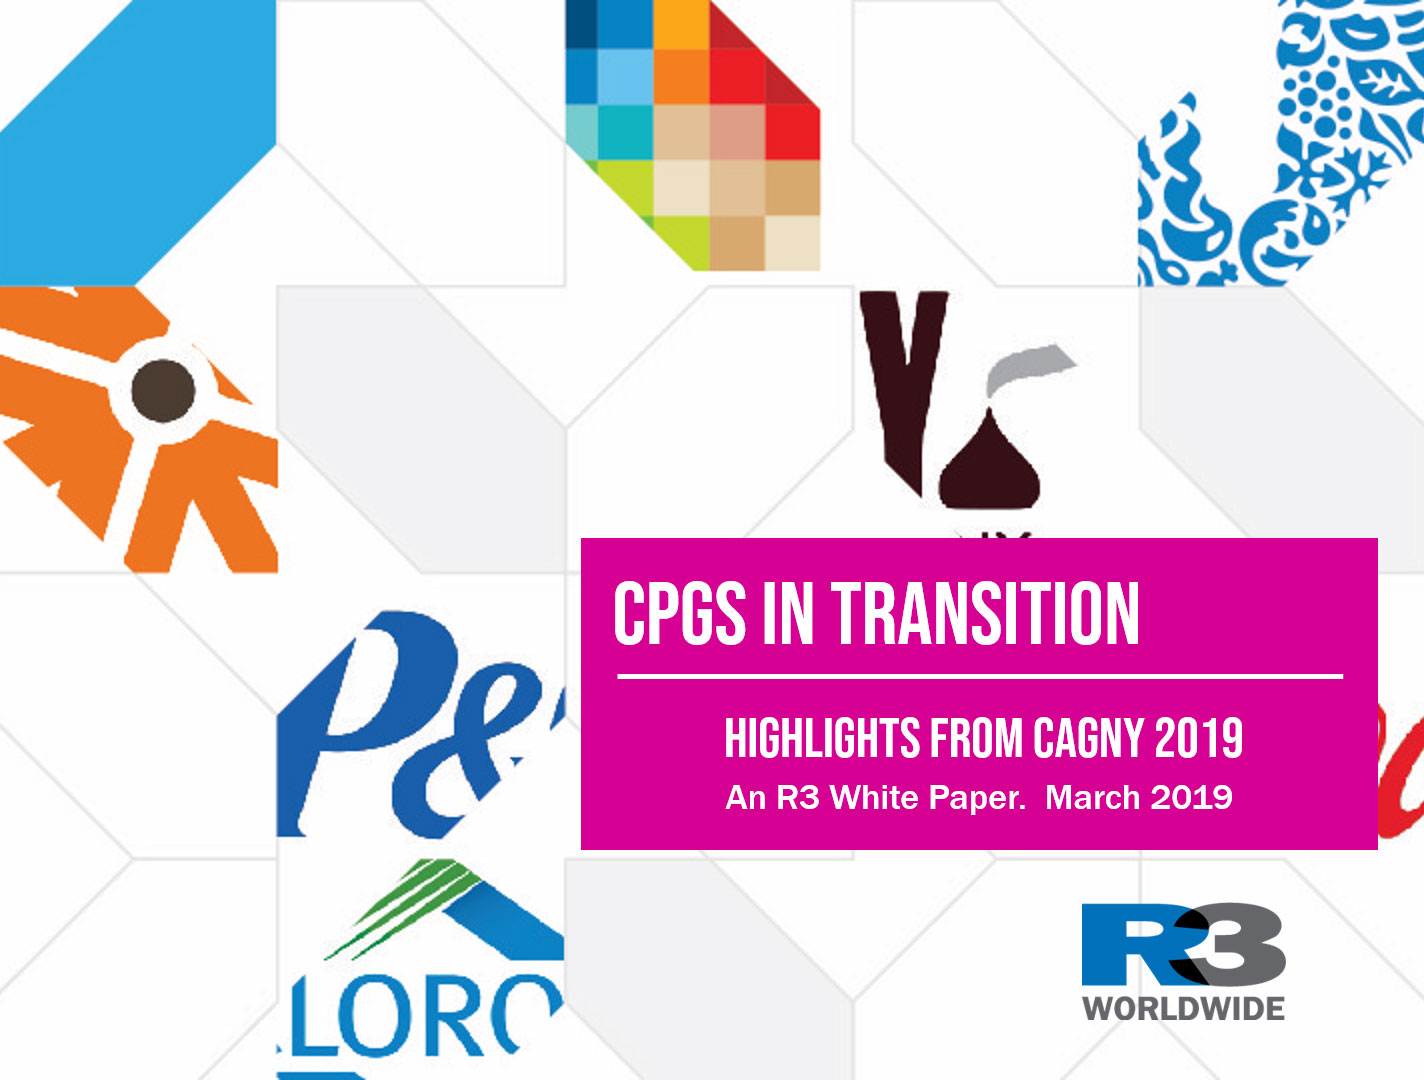 CPGs in Transition